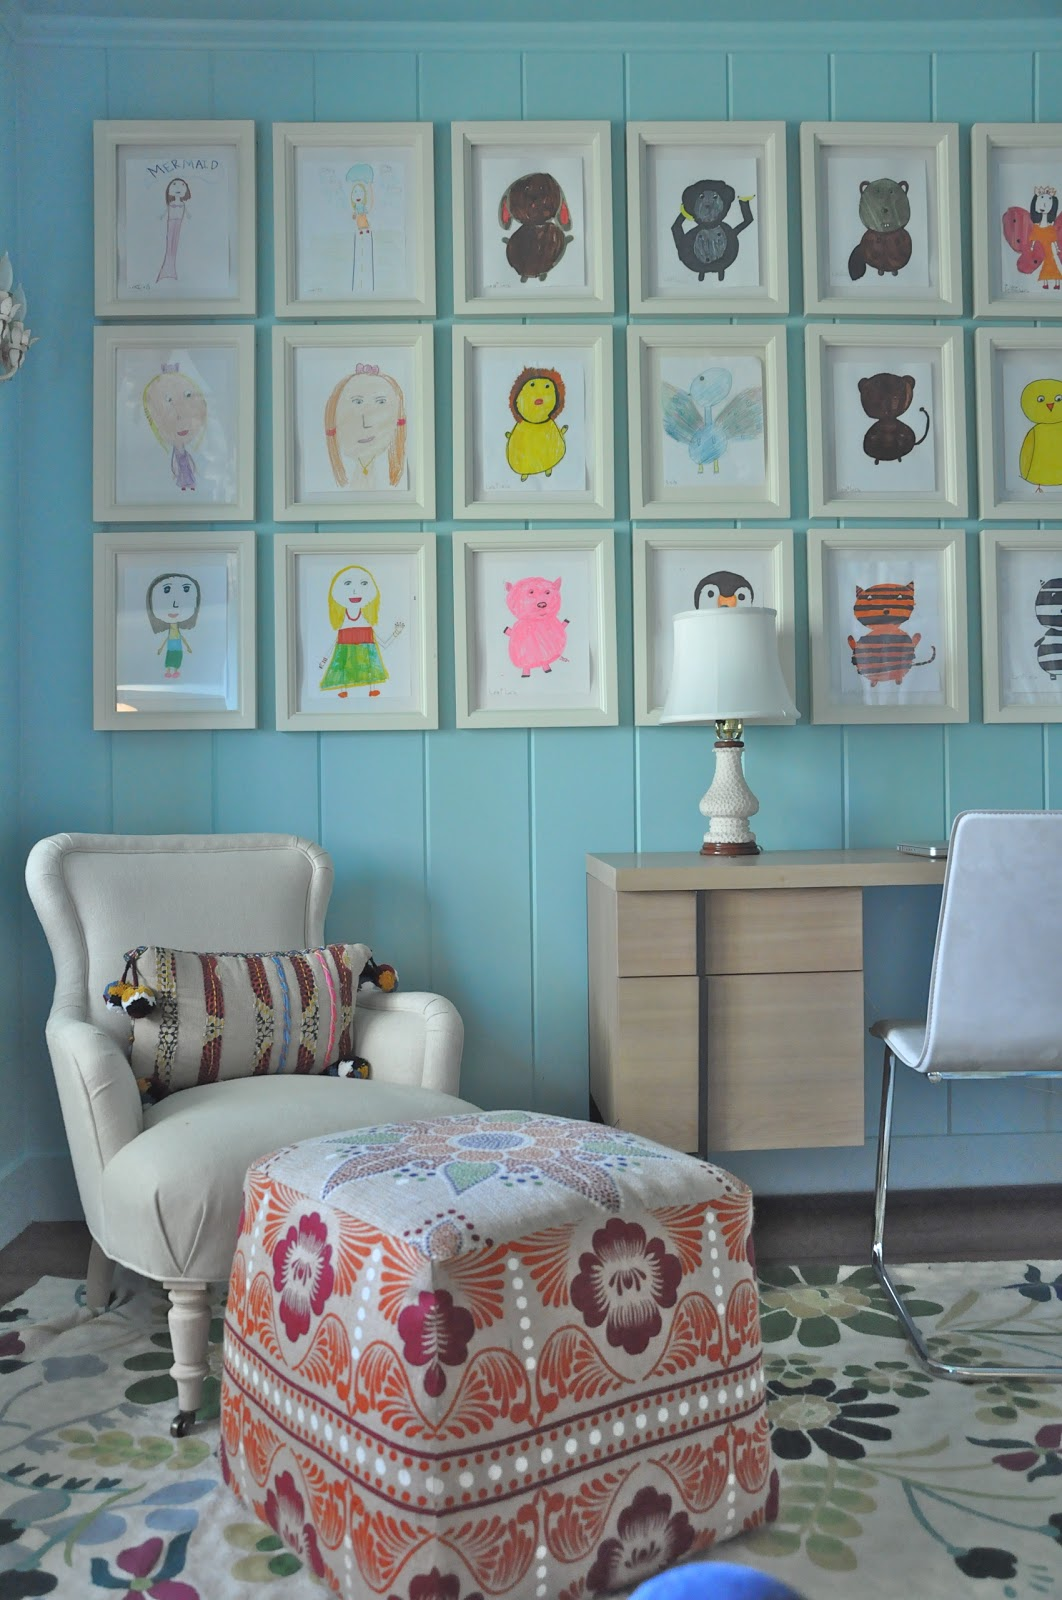 A 10 Year Old 39 S Room By Giannetti Designs Via Made By